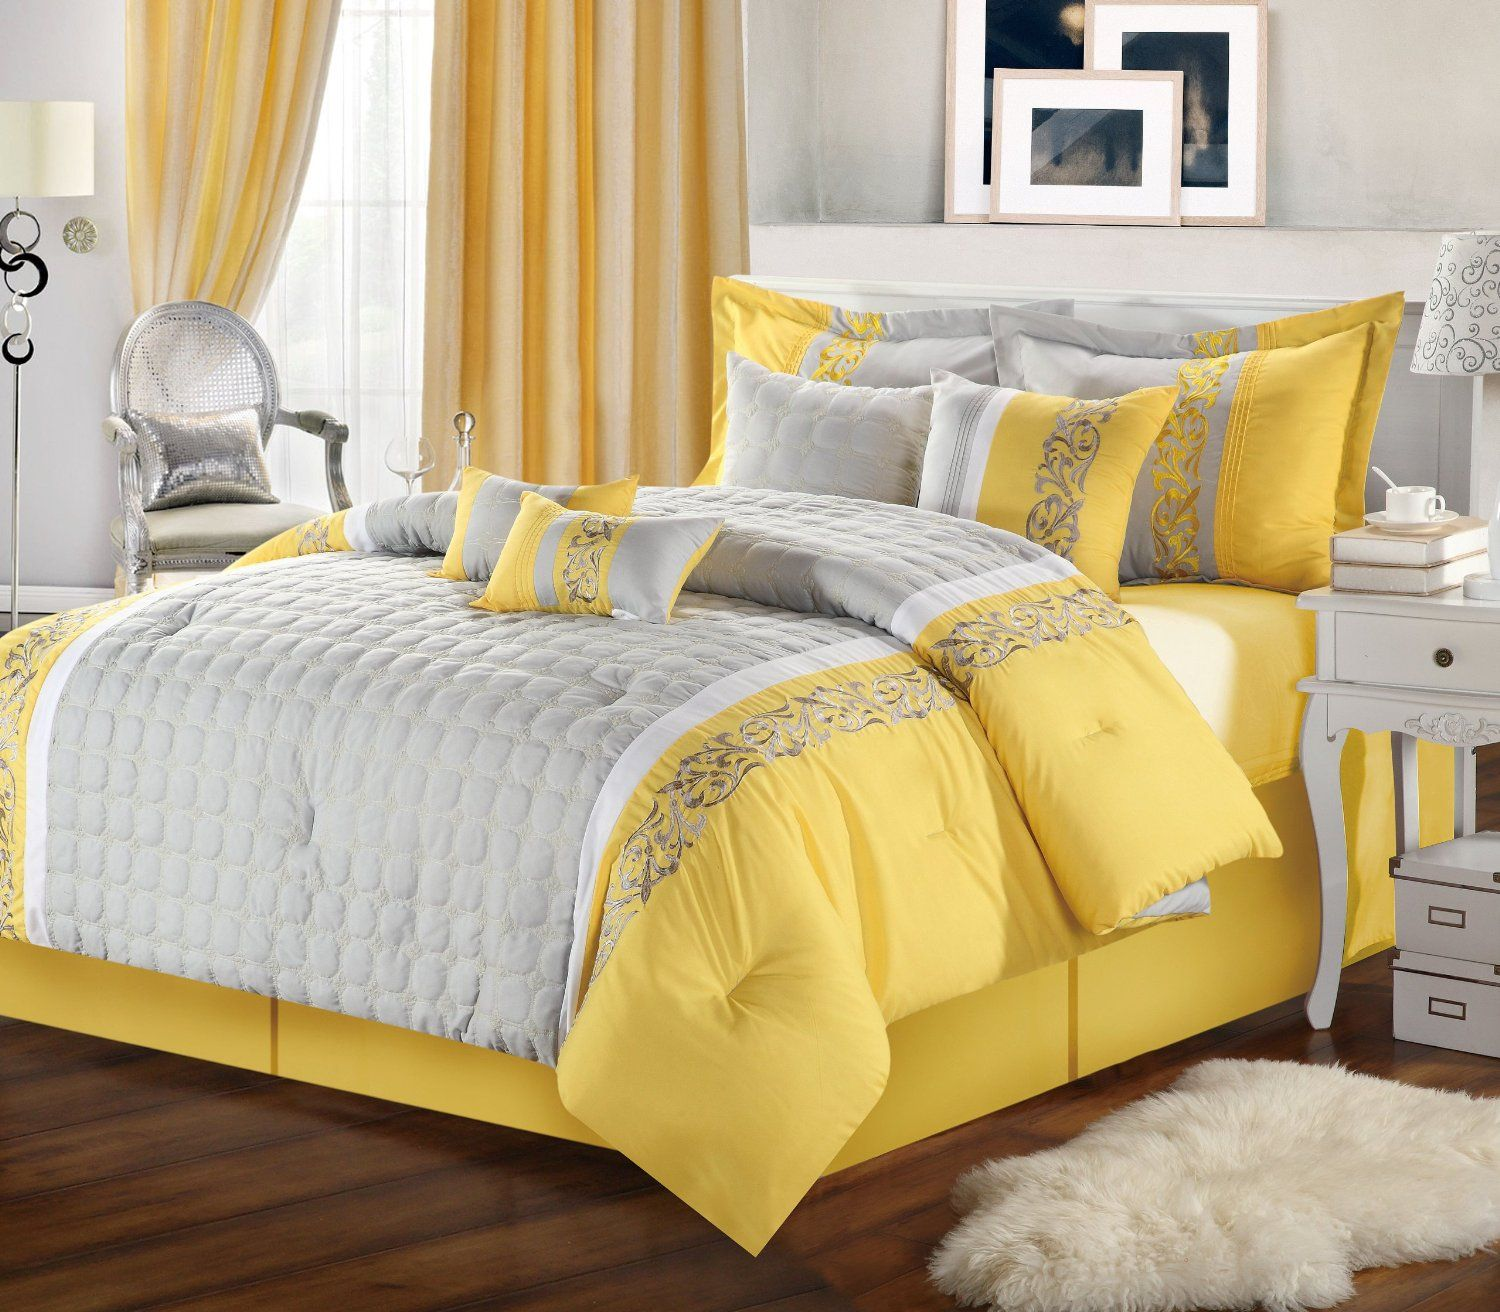 comforter sets | Grey And Yellow Bedding Sets - Grey And Yellow ...